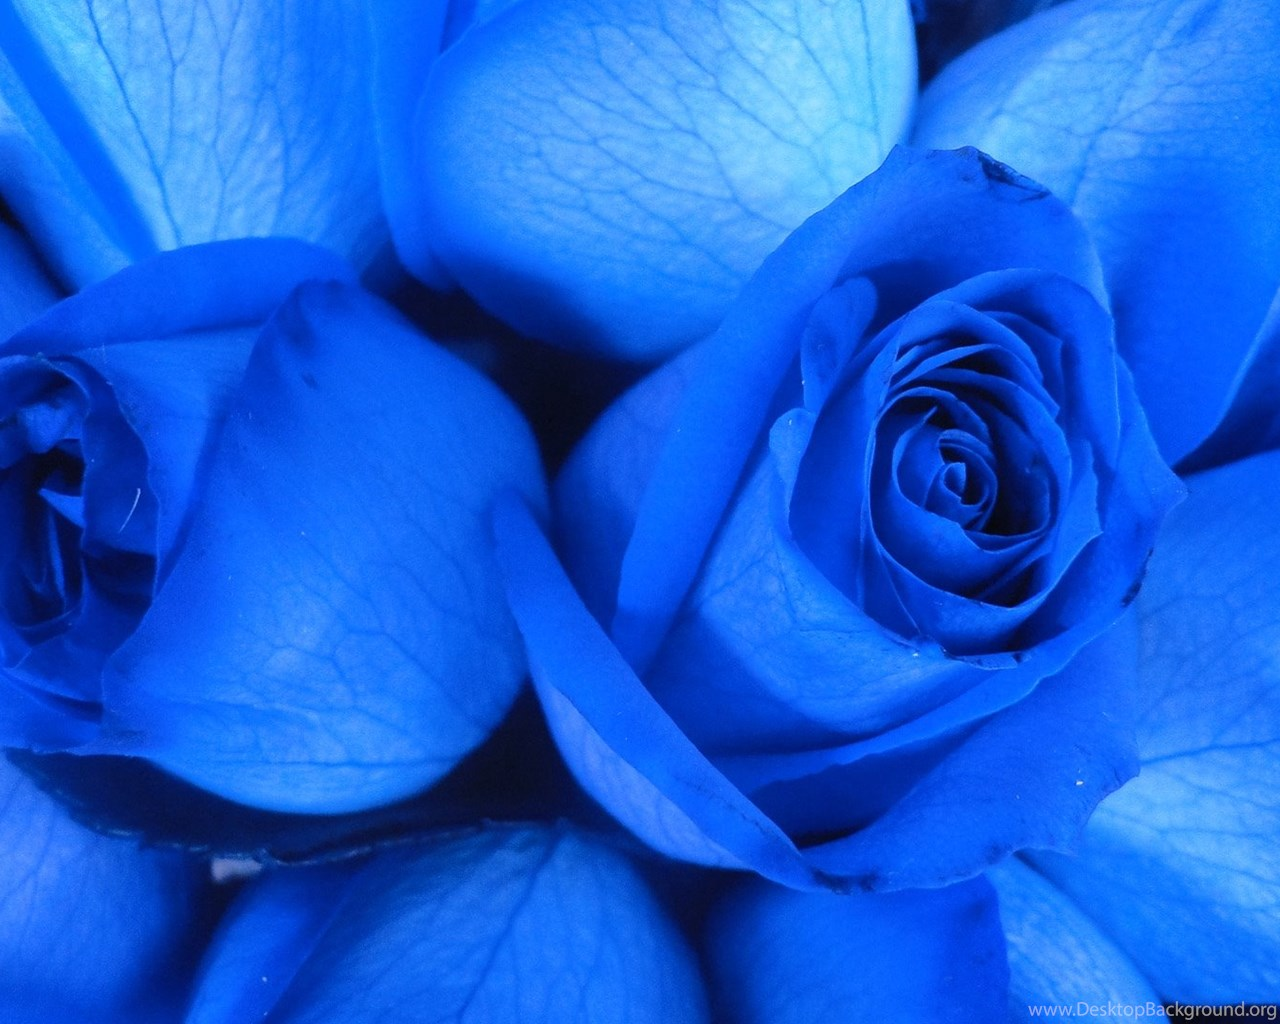 Blue rose wallpapers free download widescreen hd - Blue rose hd wallpaper download ...